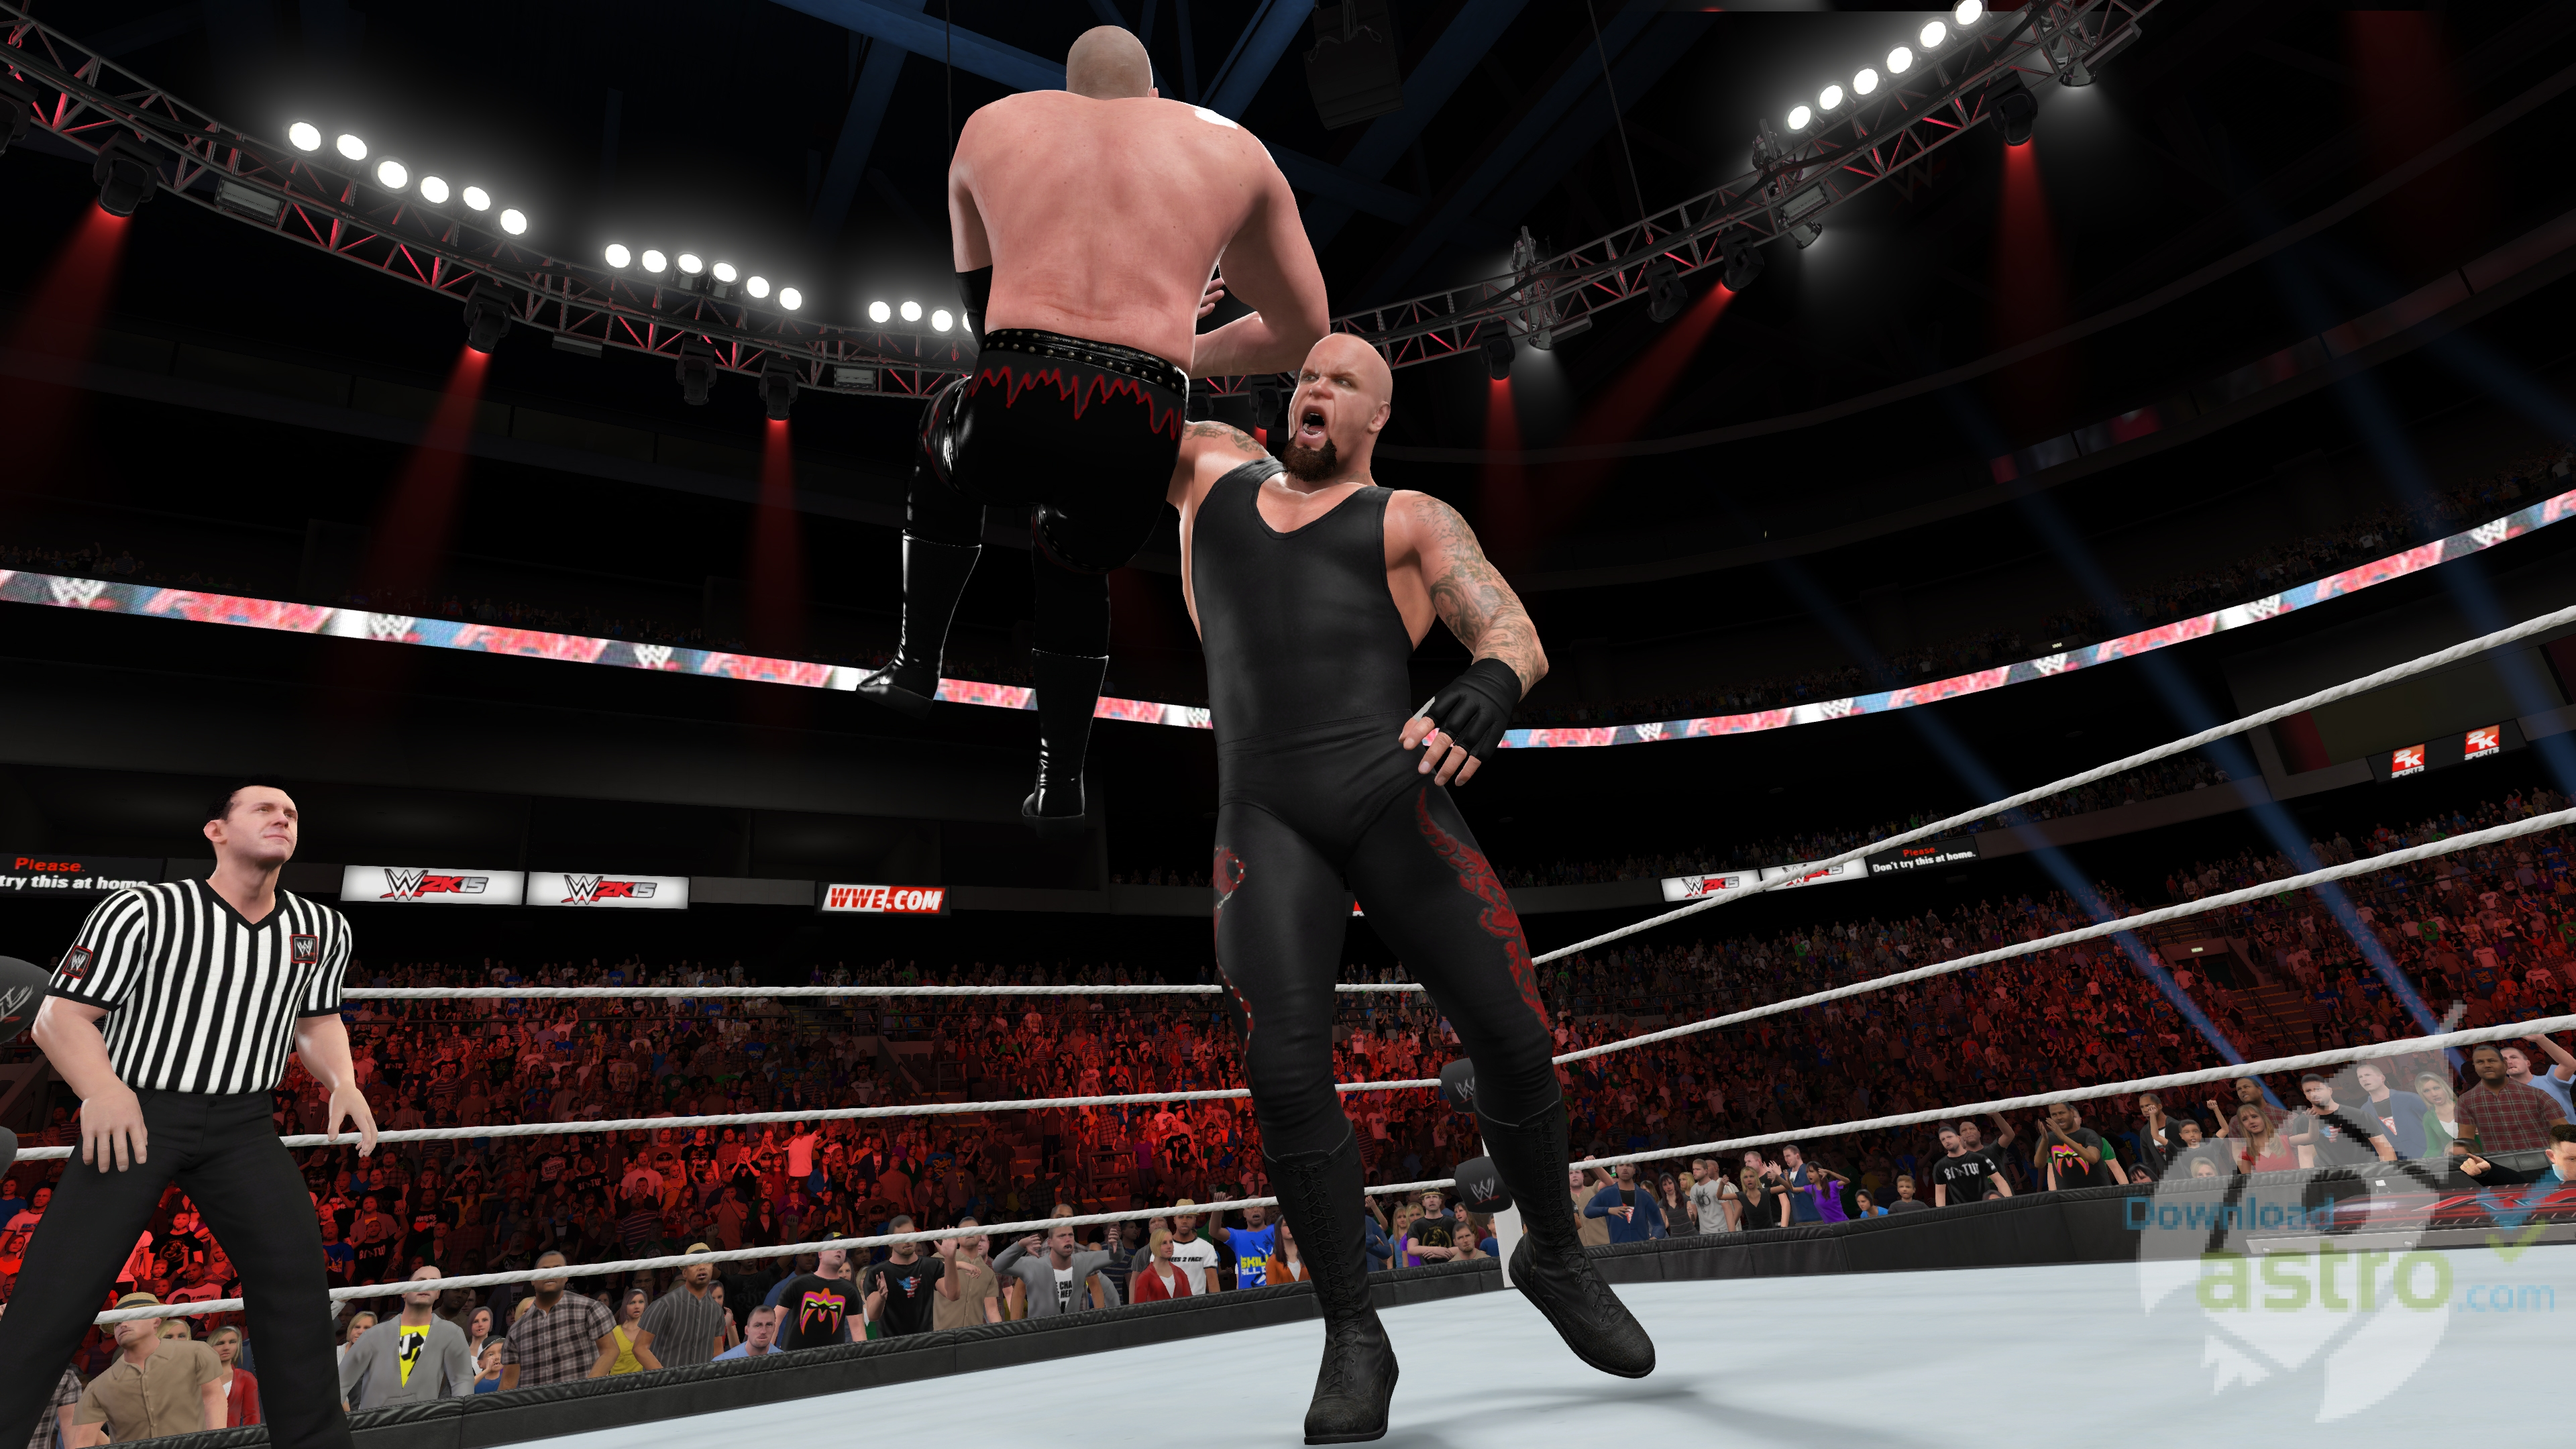 Wwe 2k15 download on pc for free full version.